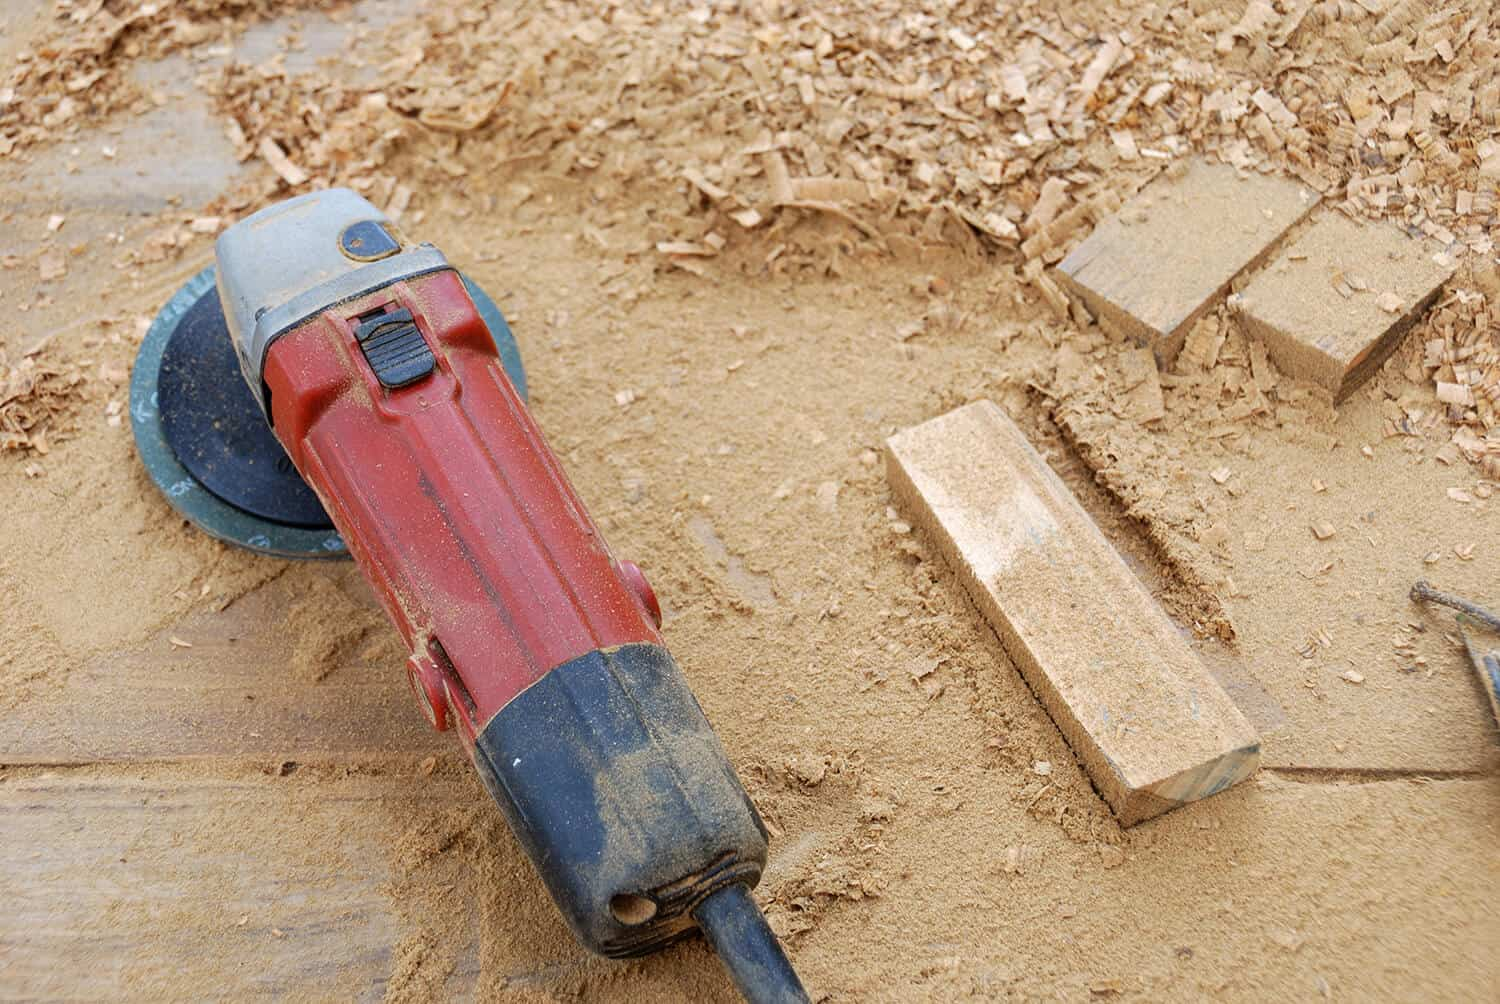 Angle grinders can cut wood